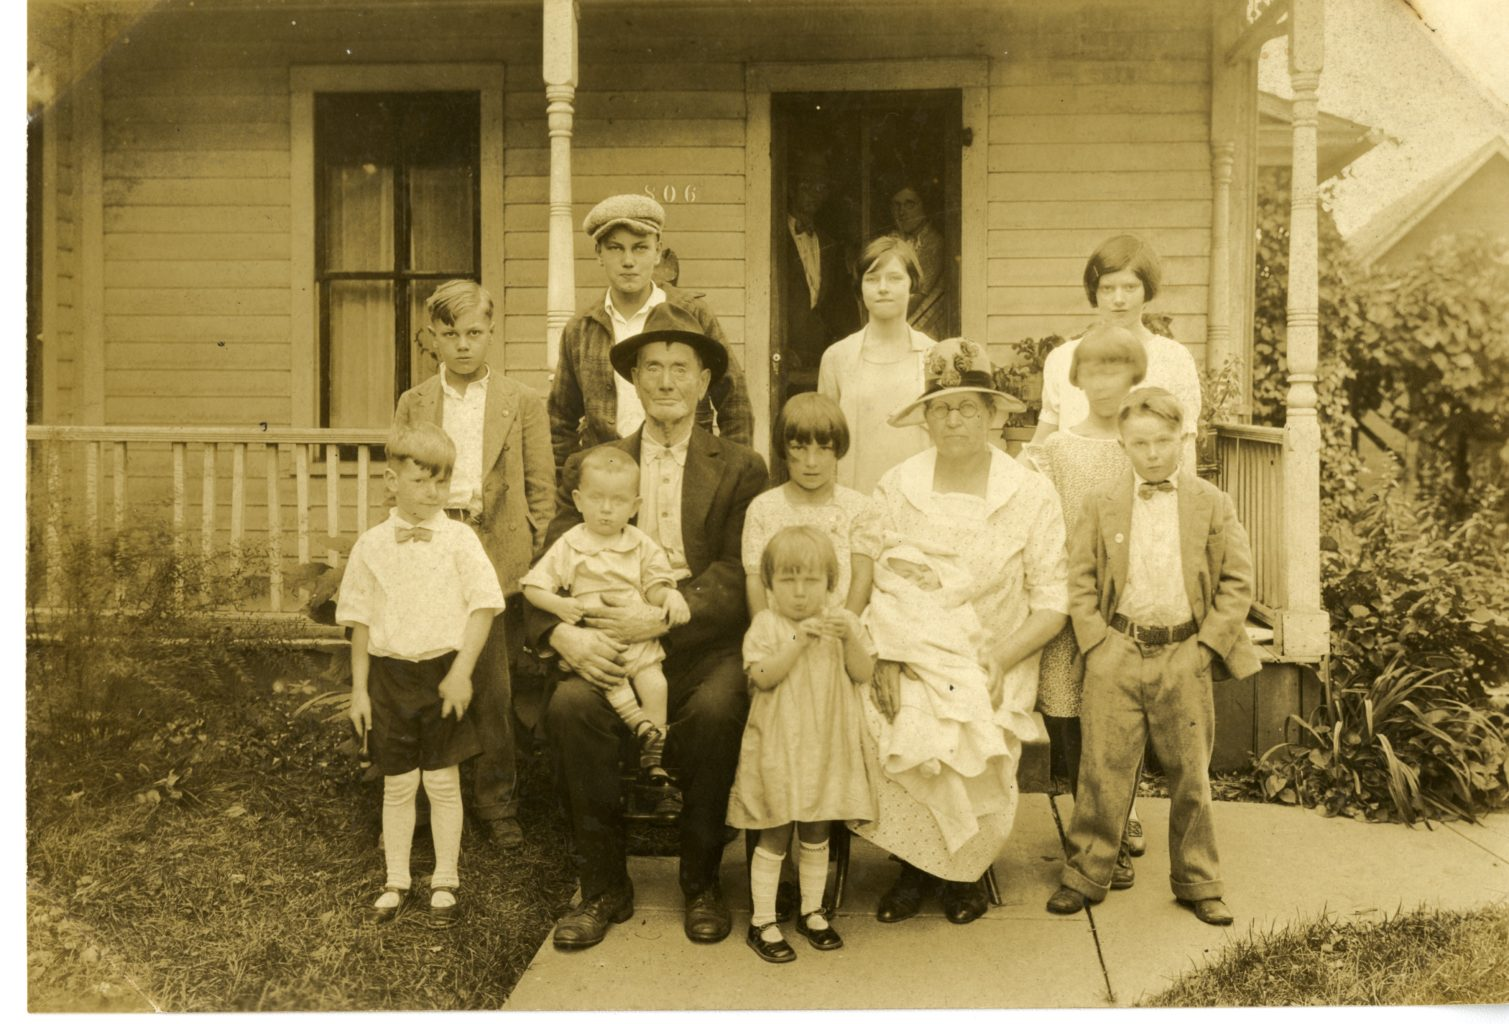 Grandparents and grandchildren pose for a photo outside of house.